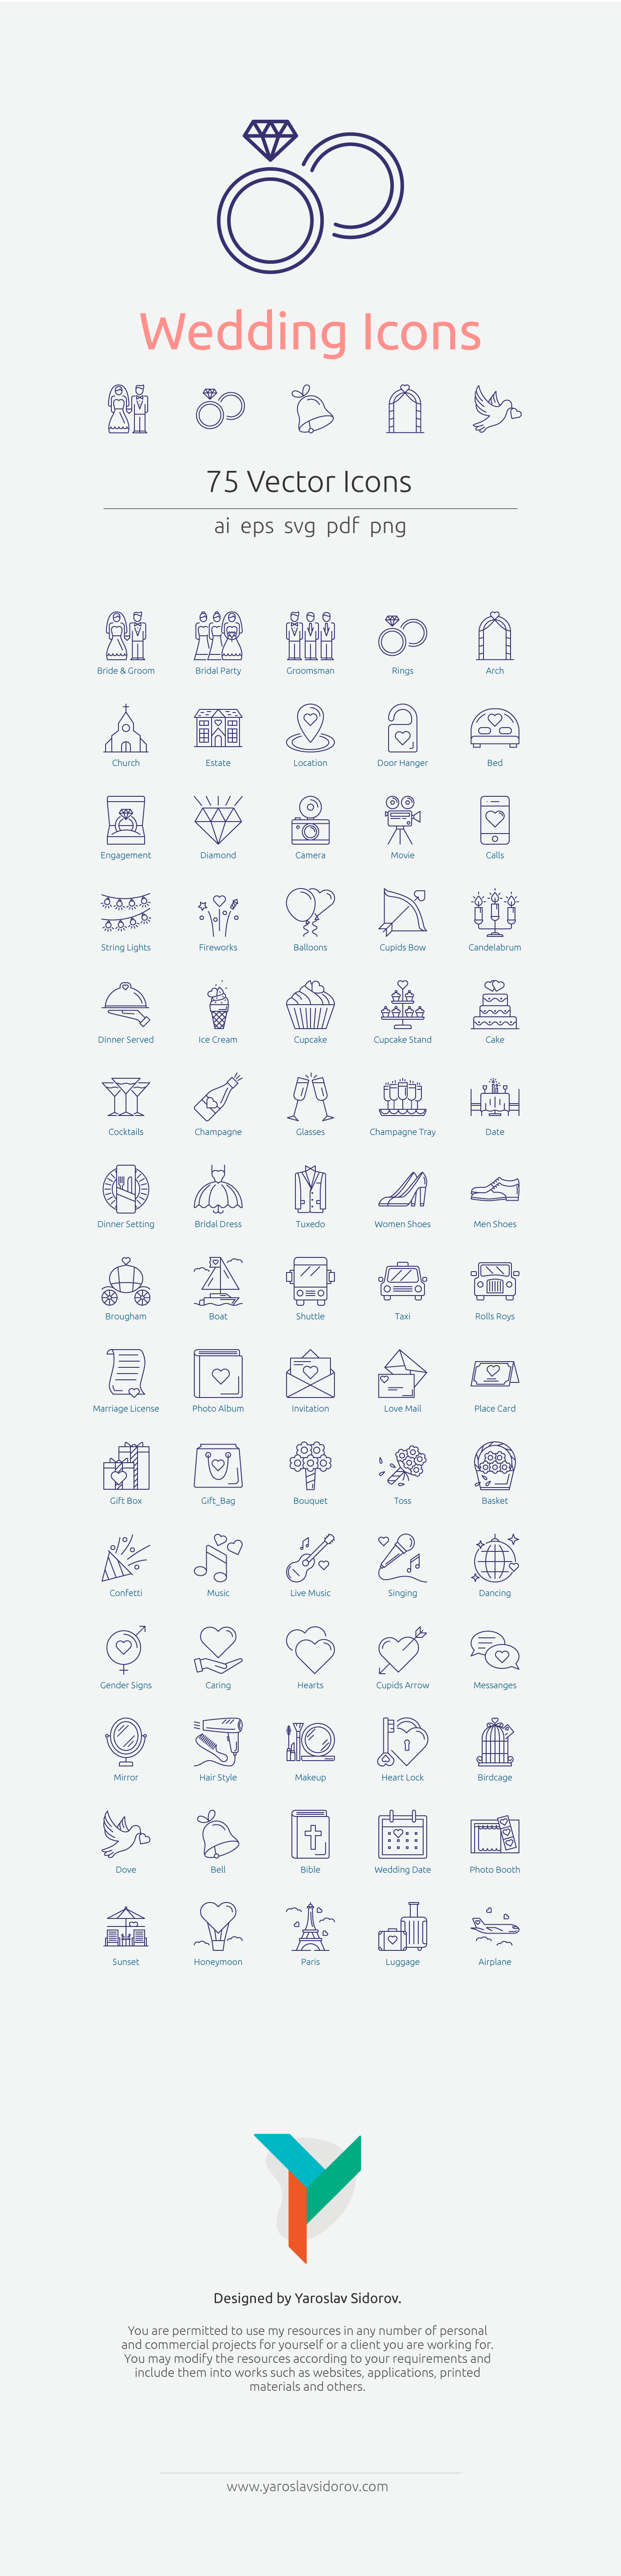 Wedding Icons in Vector and PNG #excelwordaccessetc